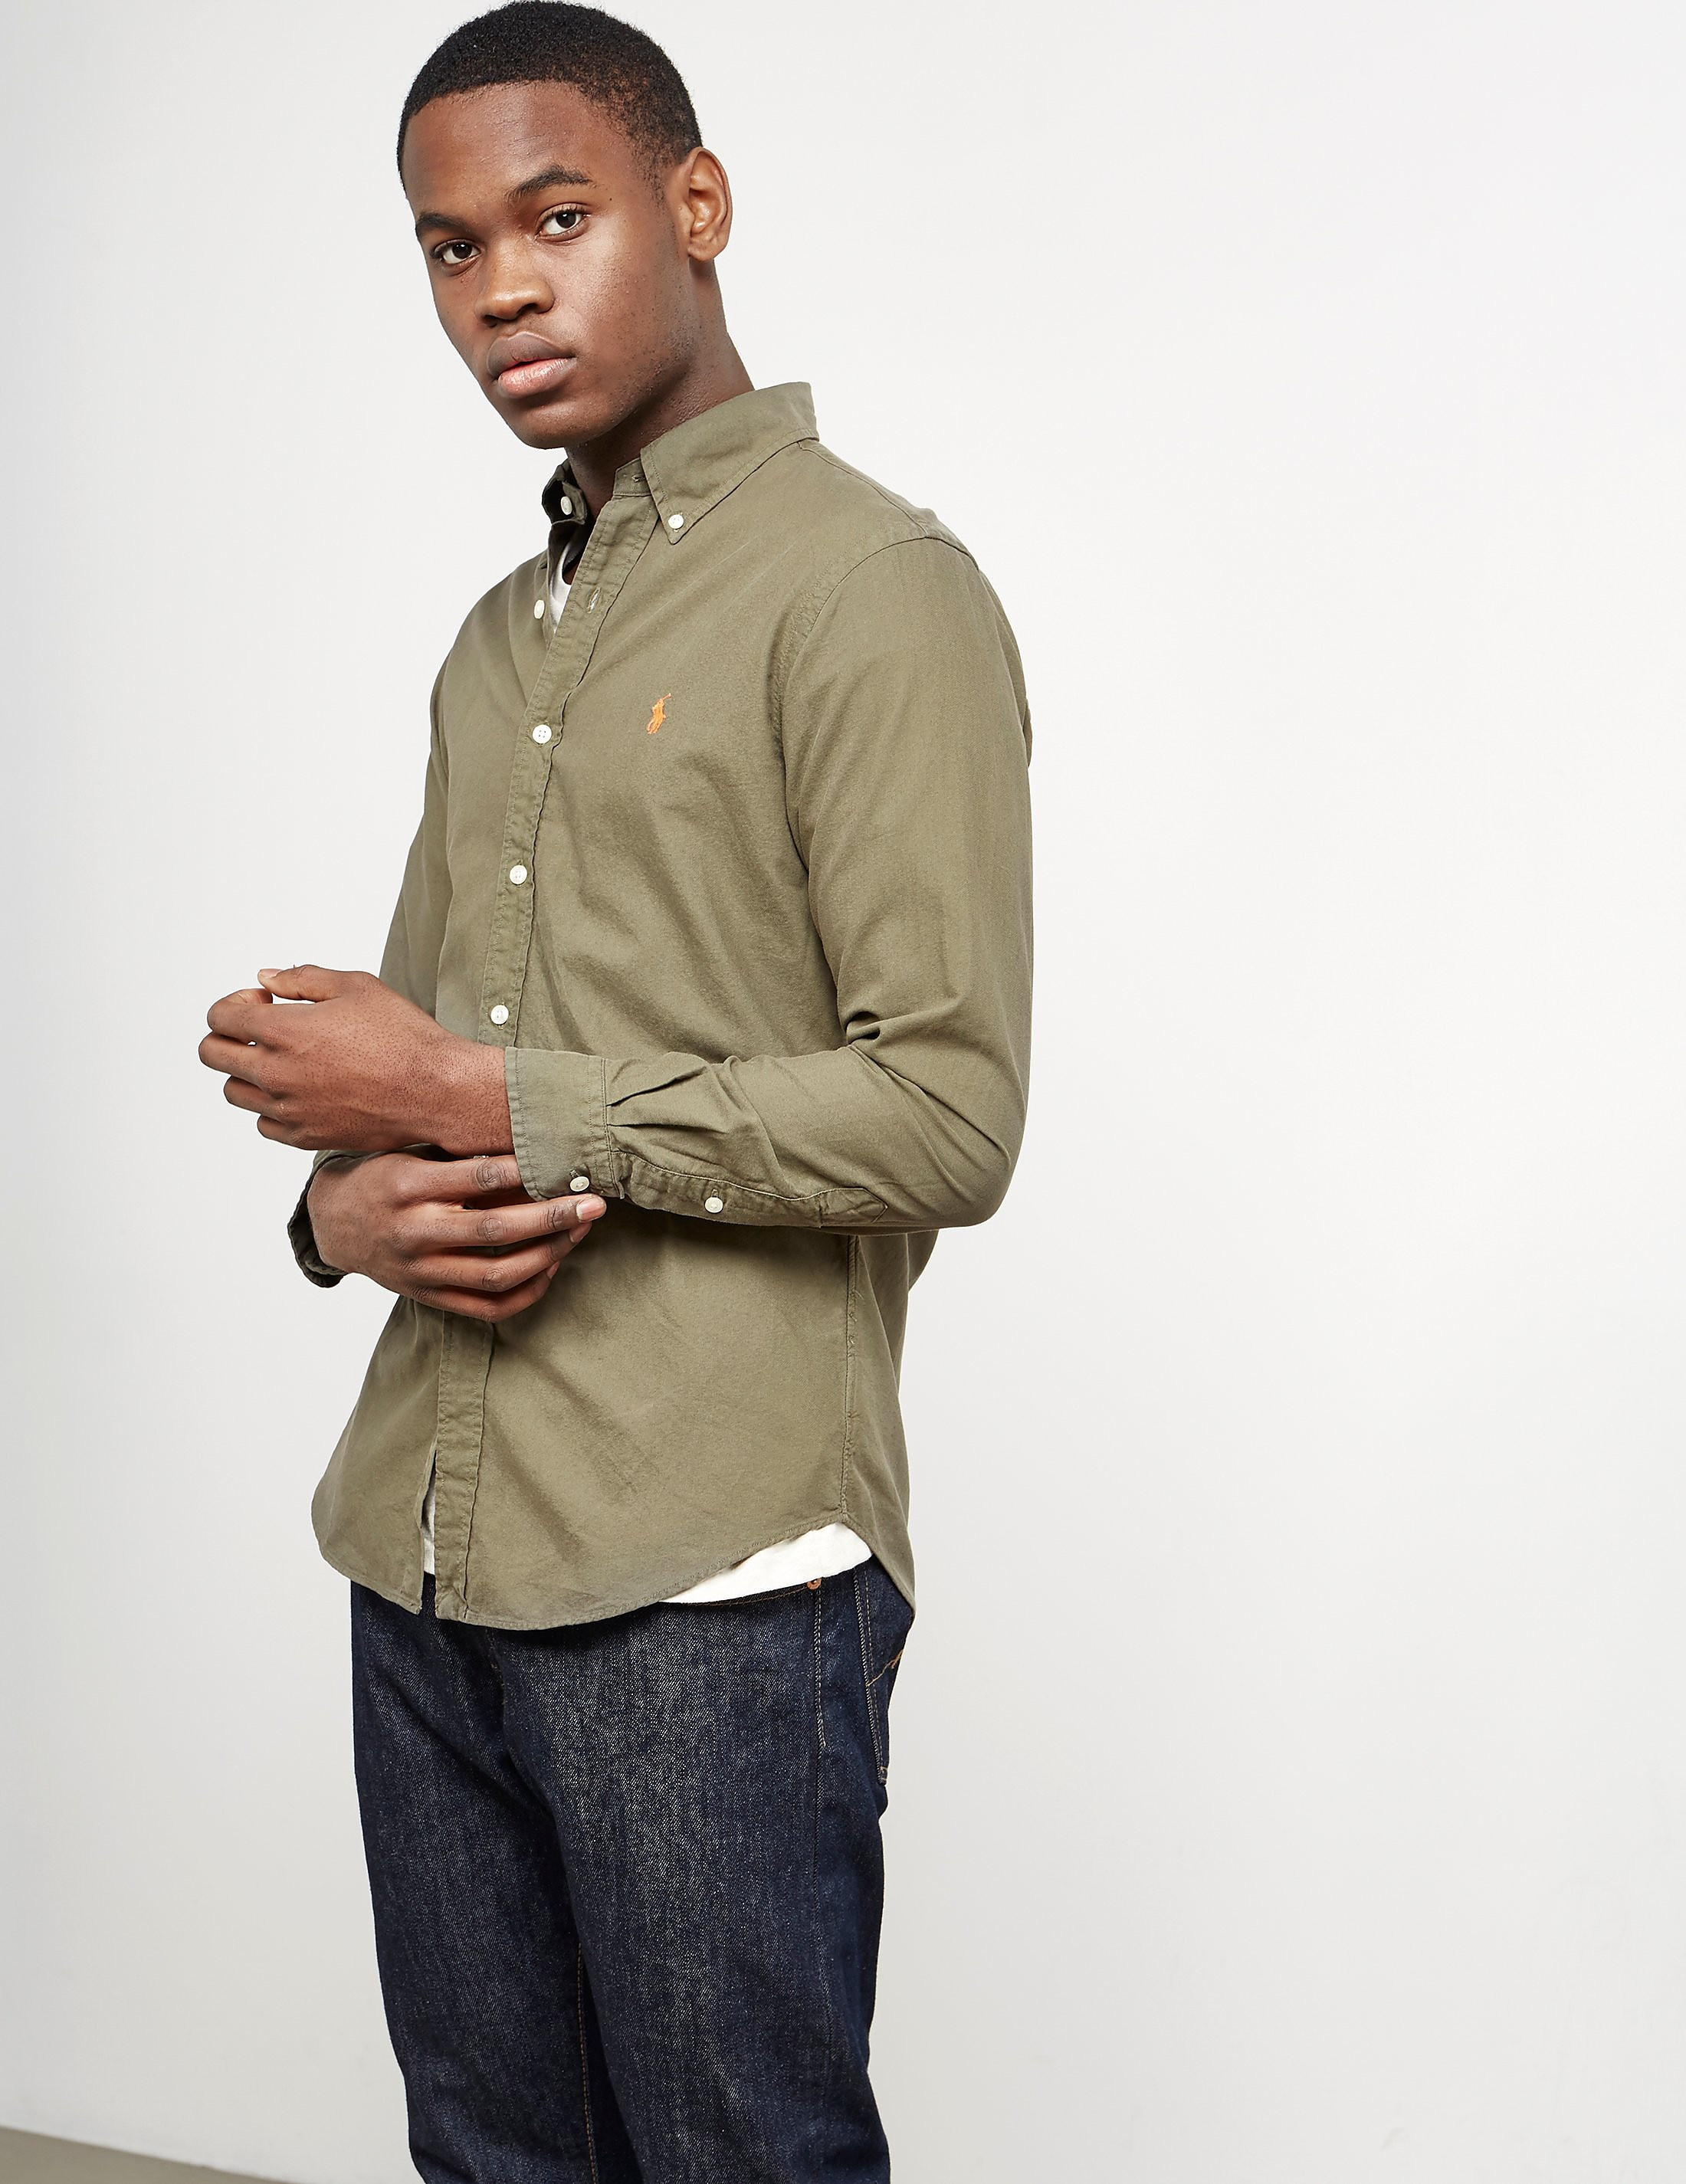 Polo Ralph Lauren Garment Dyed Long Sleeve Oxford Shirt